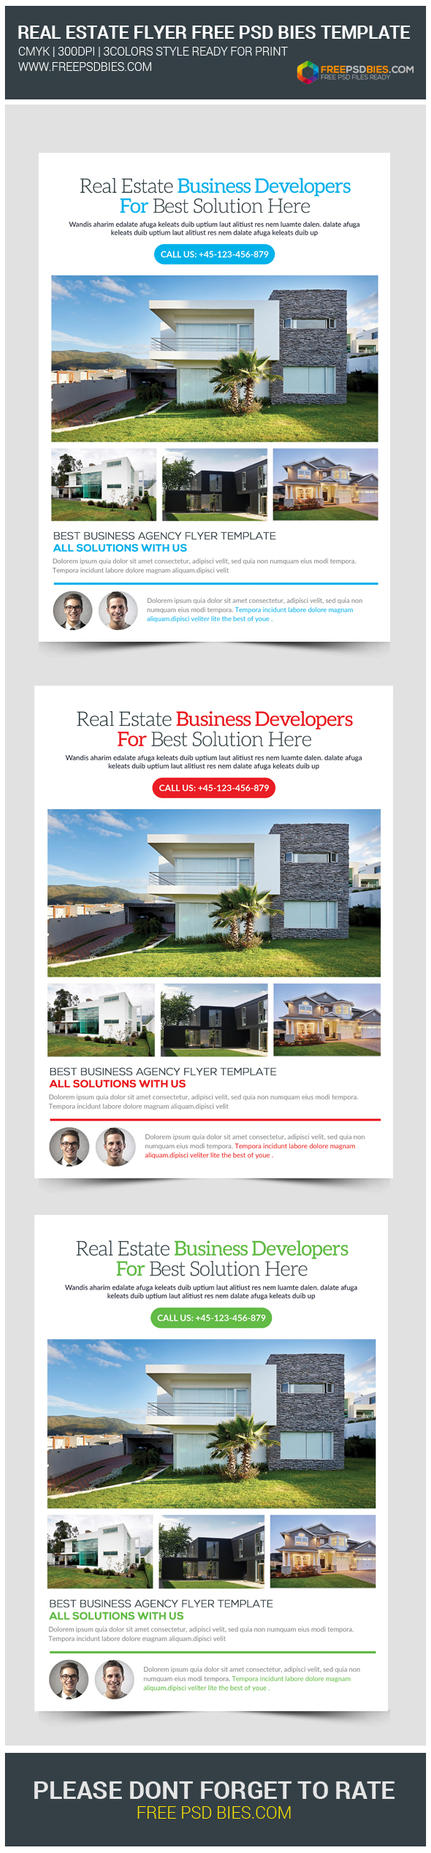 Real estate open house flyers free psd template by for Real estate brochure templates psd free download